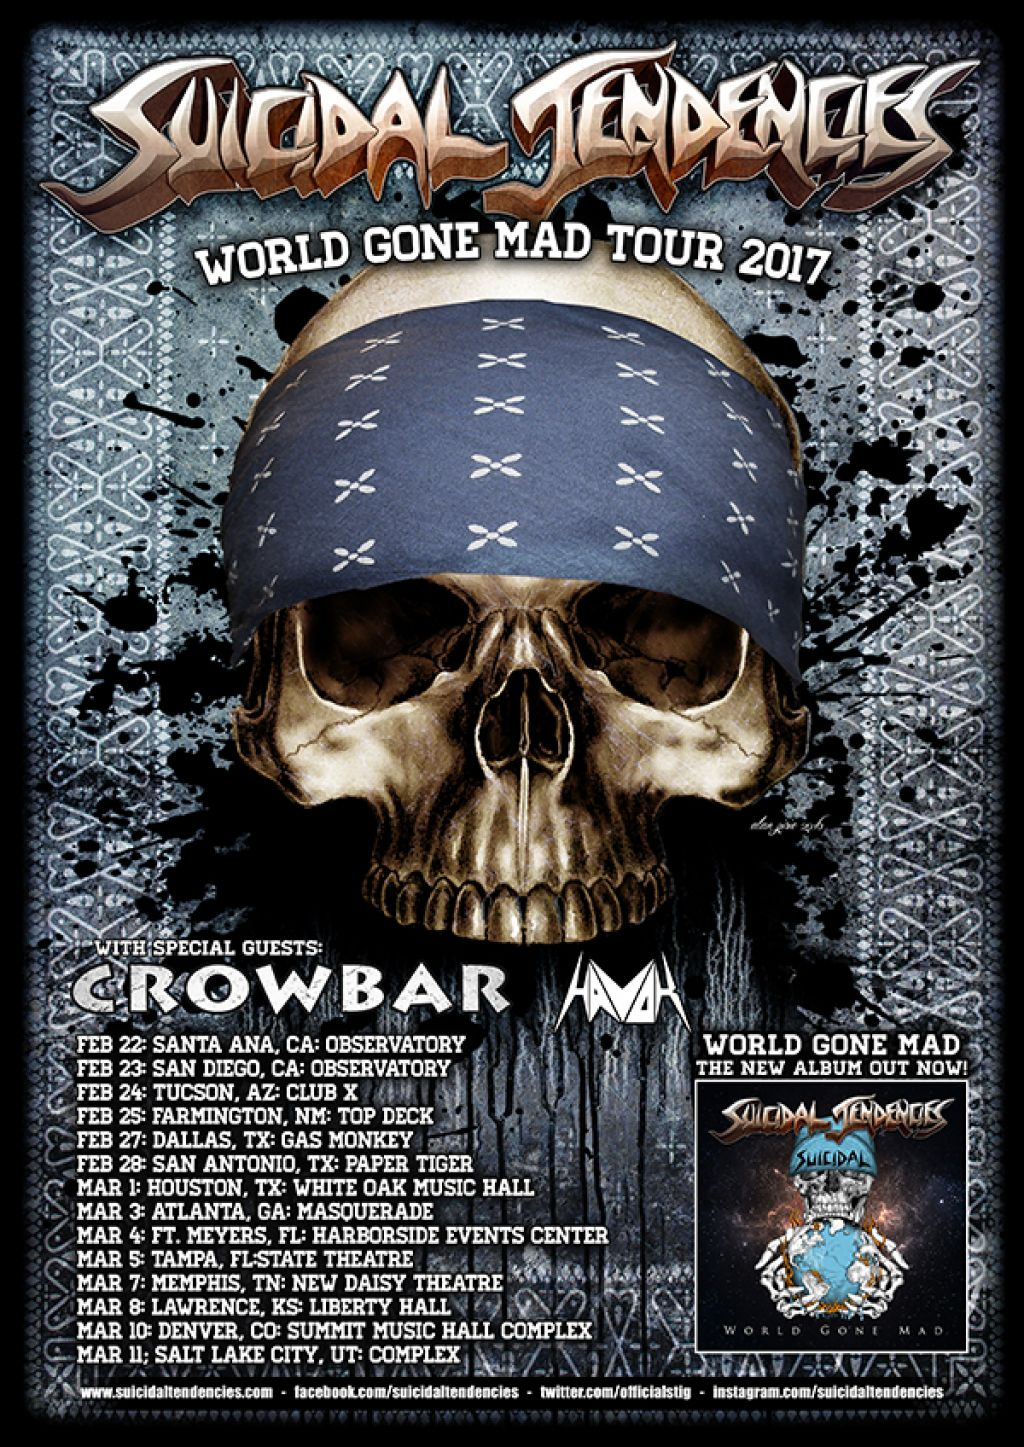 WORLD GONE MAD US TOUR